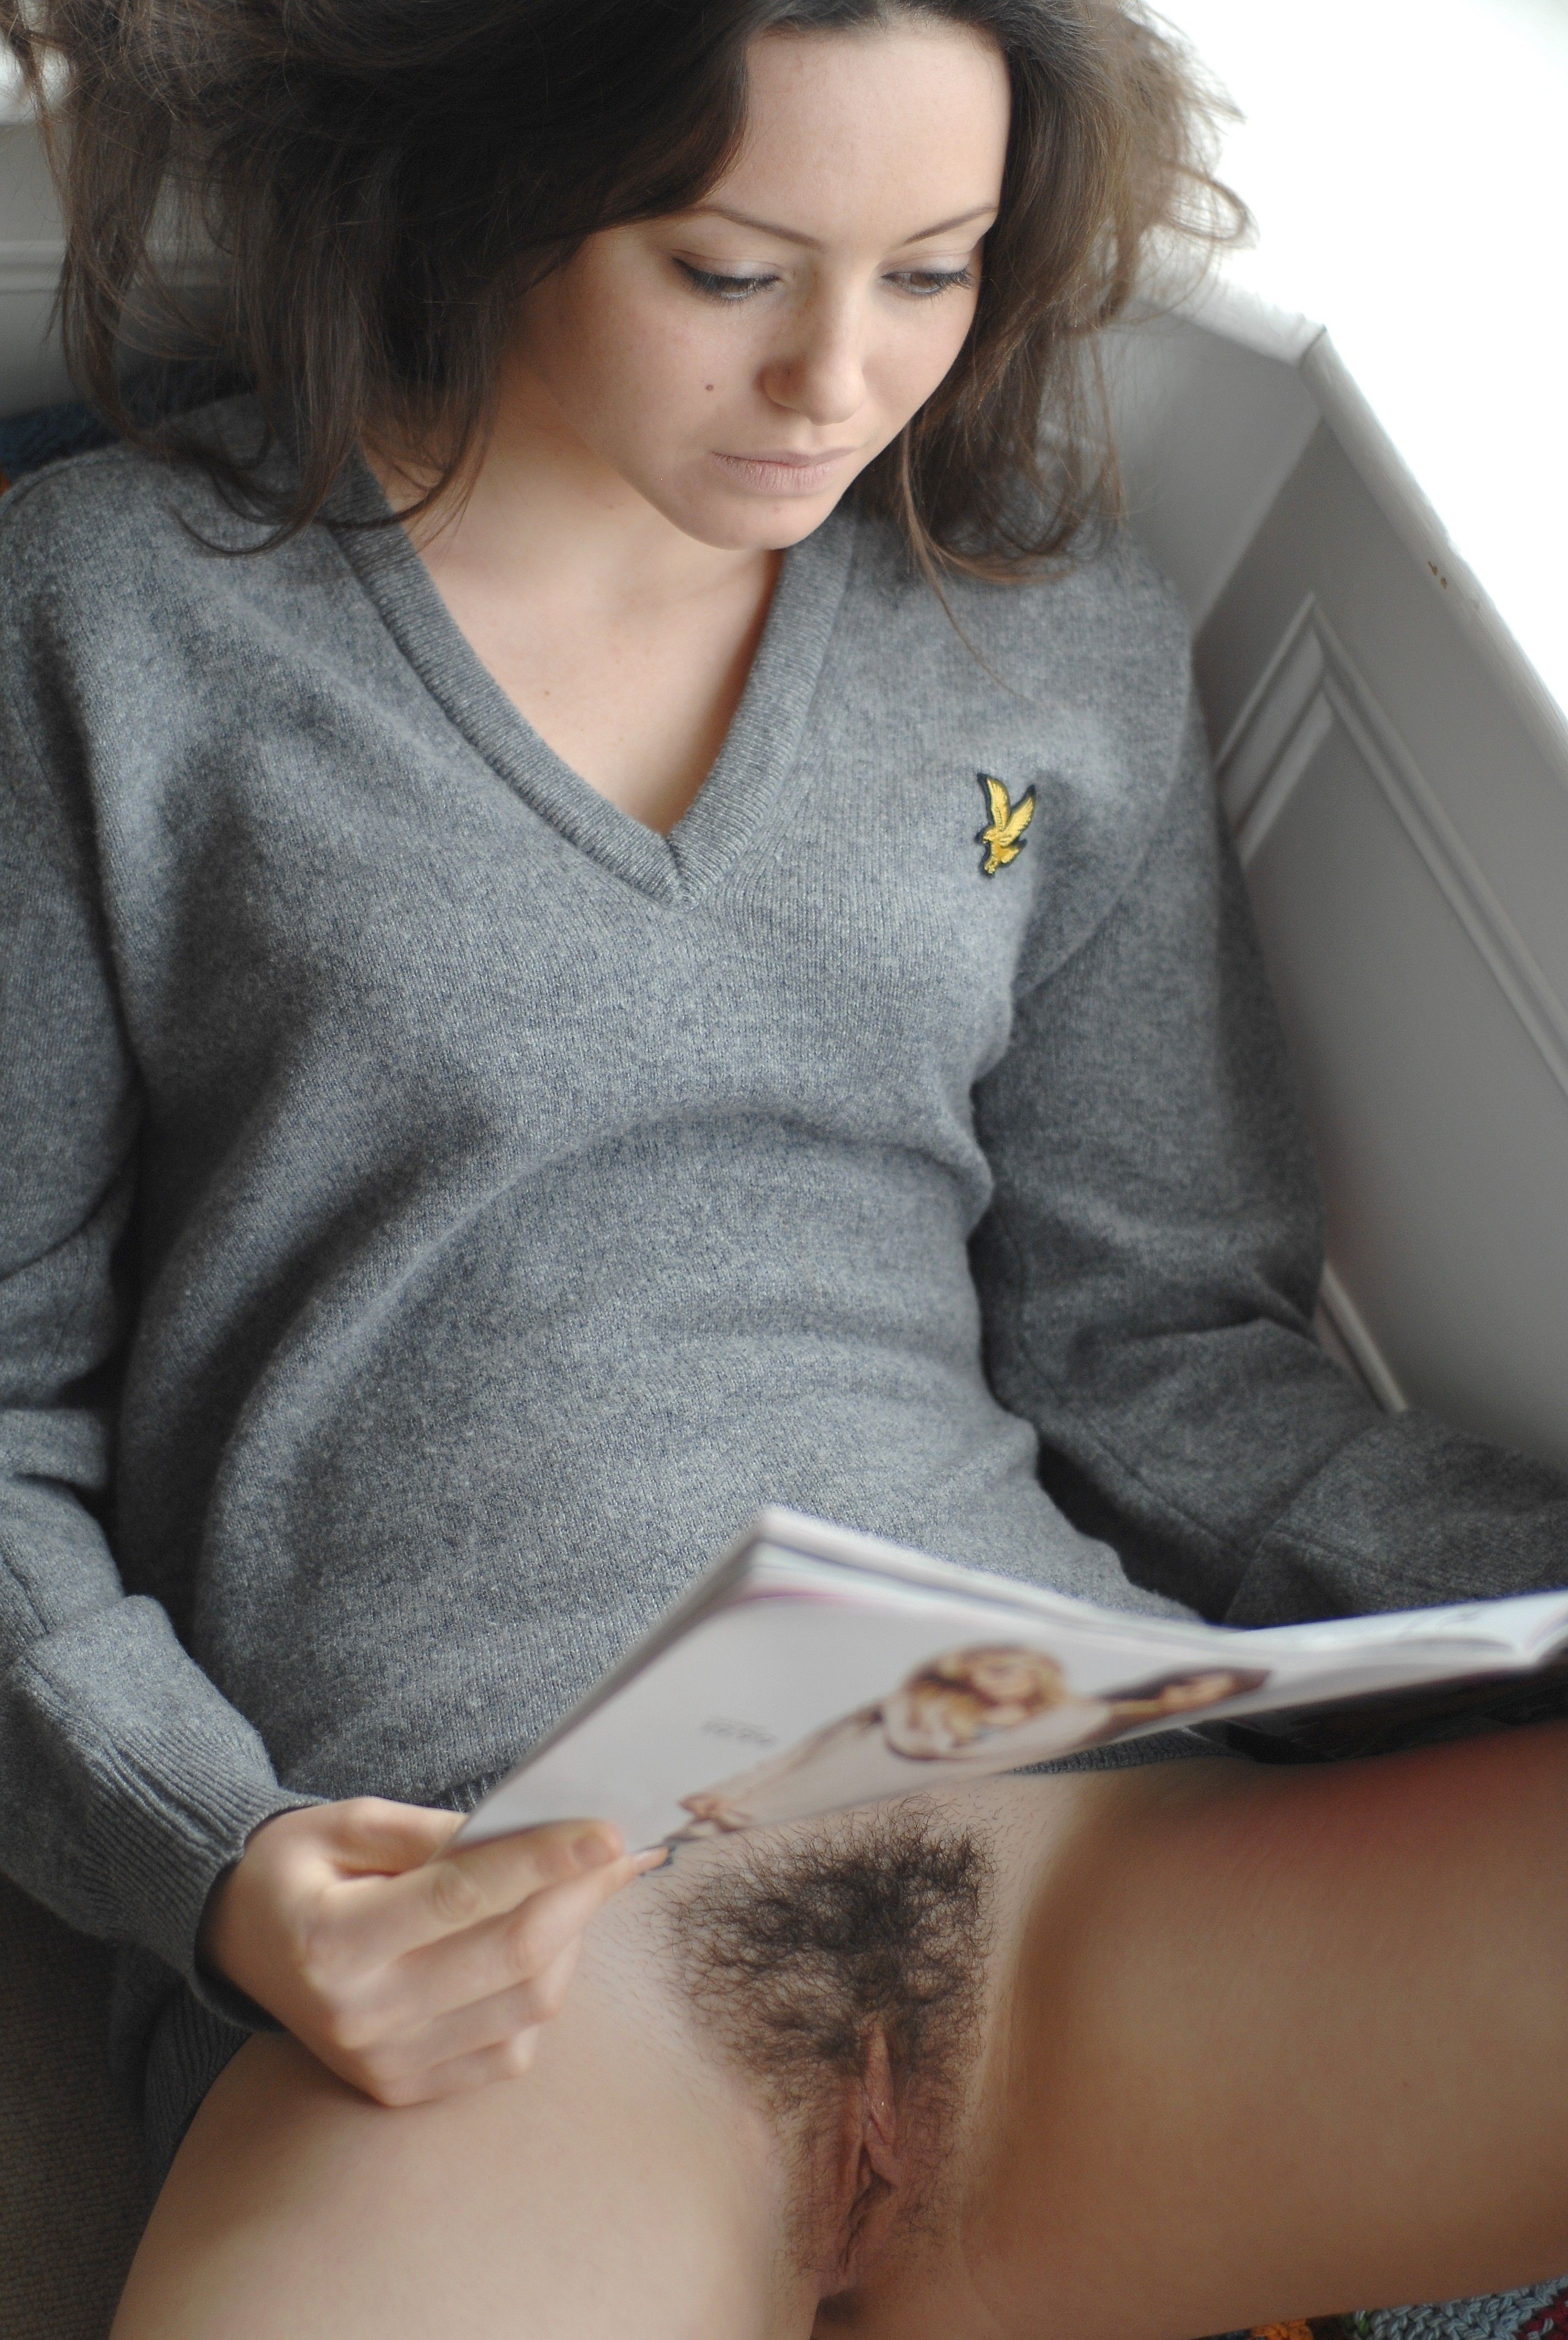 kunoichi gif barrage hentai pictures luscious #hairy #gorgeous #teen #young #schoolgirl #reading #sweater #cute #adorable #college #coed #stunning #brunette